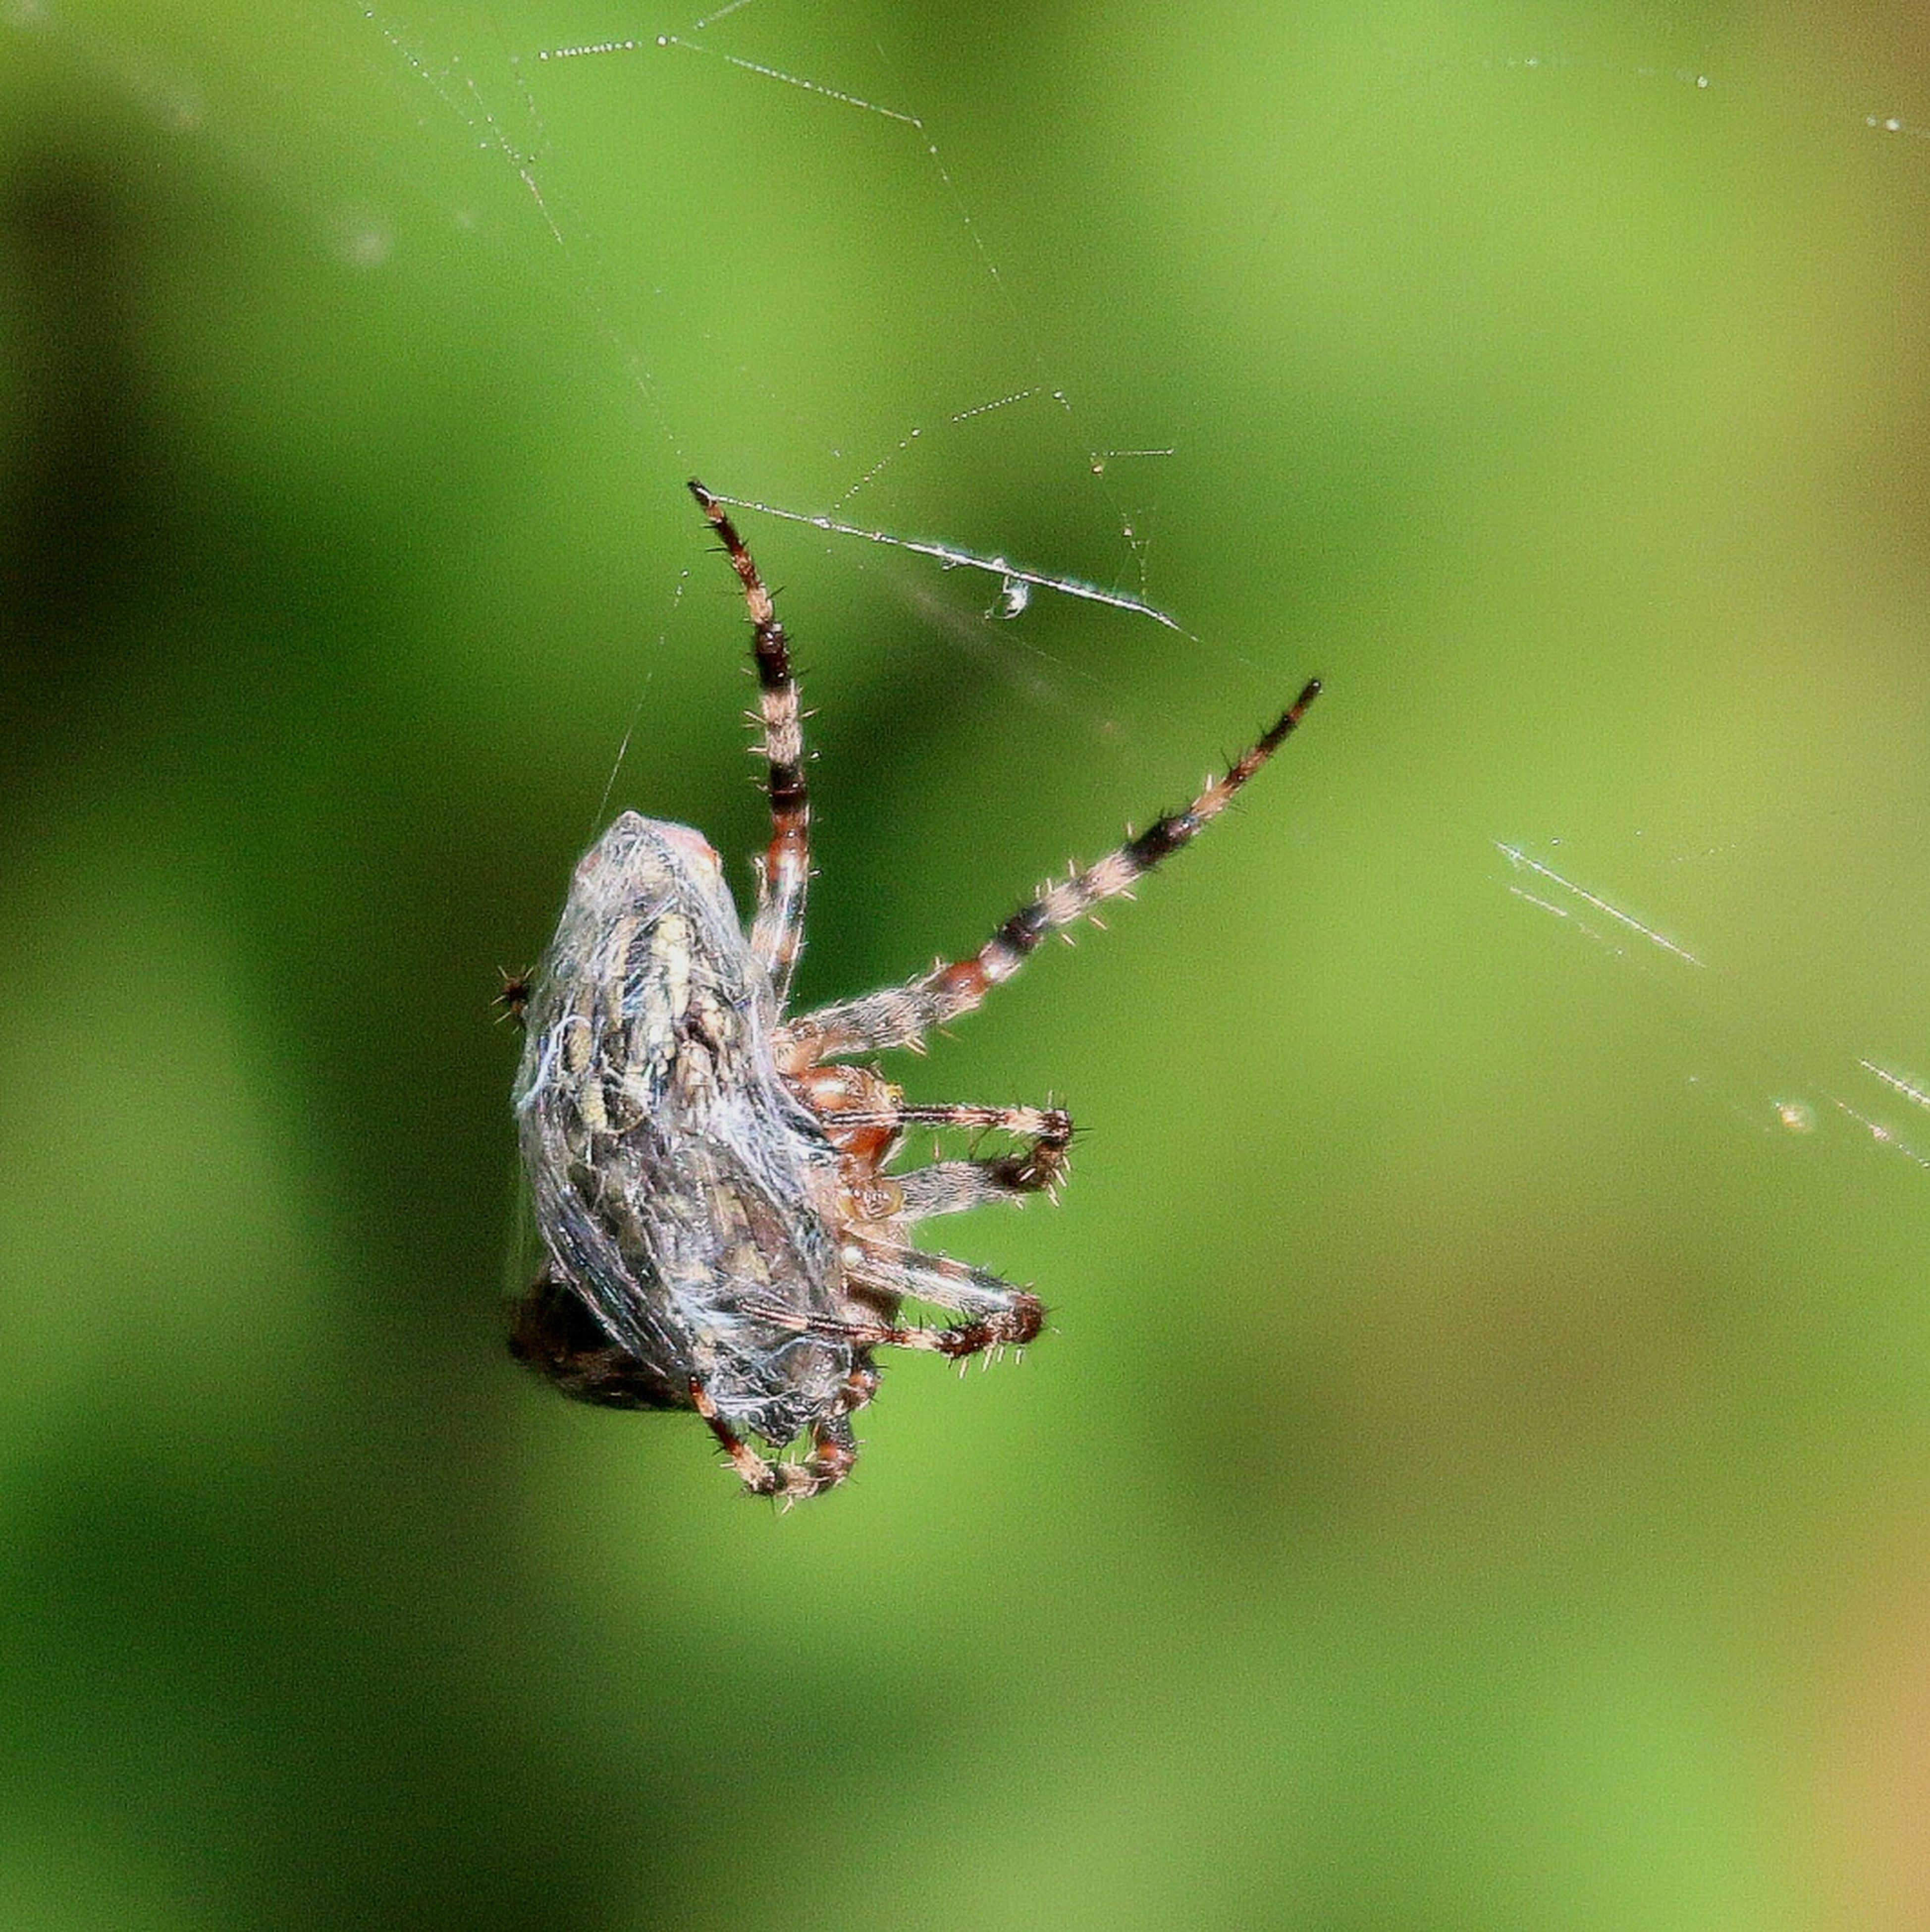 focus on foreground, close-up, spider web, drop, water, fragility, animals in the wild, selective focus, nature, animal themes, insect, spider, wet, wildlife, day, beauty in nature, outdoors, plant, one animal, no people